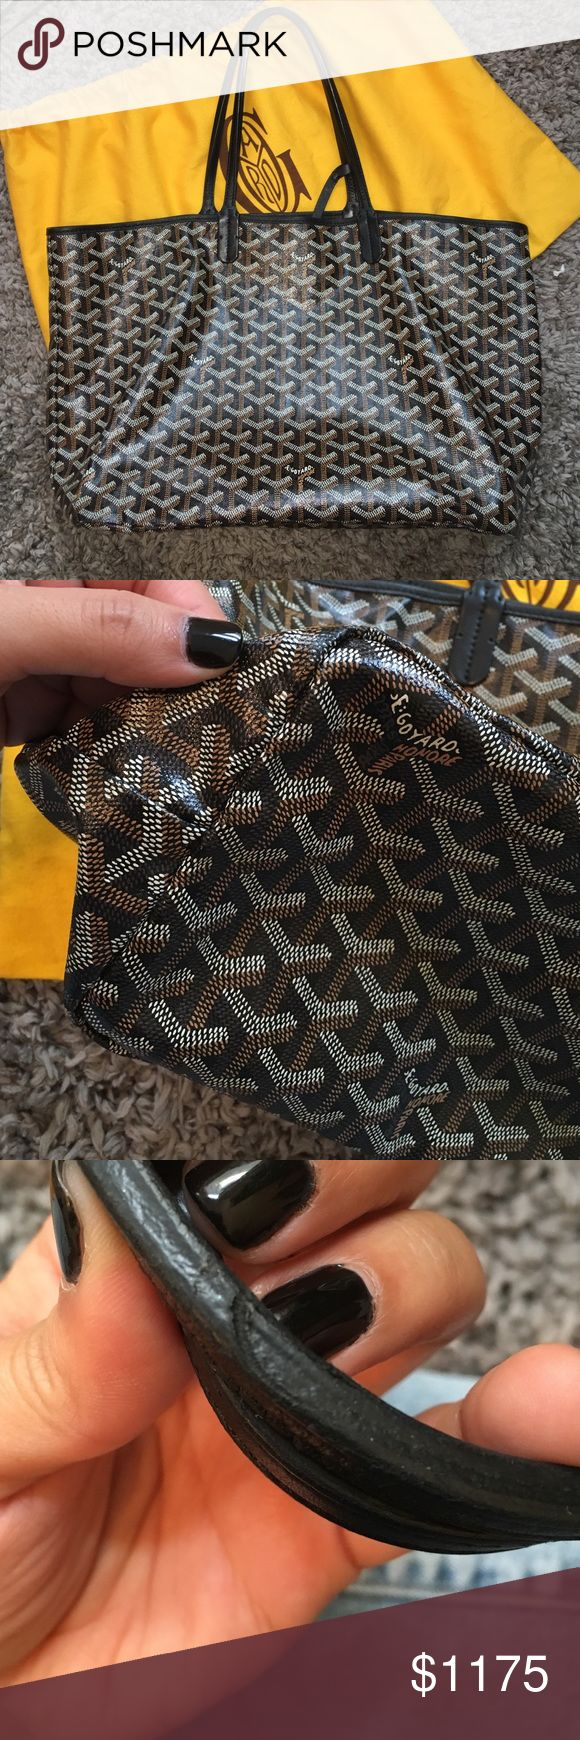 Goyard Saint Louis PM - Black/Black So sad to part ways. My favorite bag. Moving in 6 days and need to sell. More pics avail and receipt etc. 8.5/10. Almost no signs of wear. I will include the wallet that comes w bag. Price is firm as posh takes 20%. Goyard Bags Totes